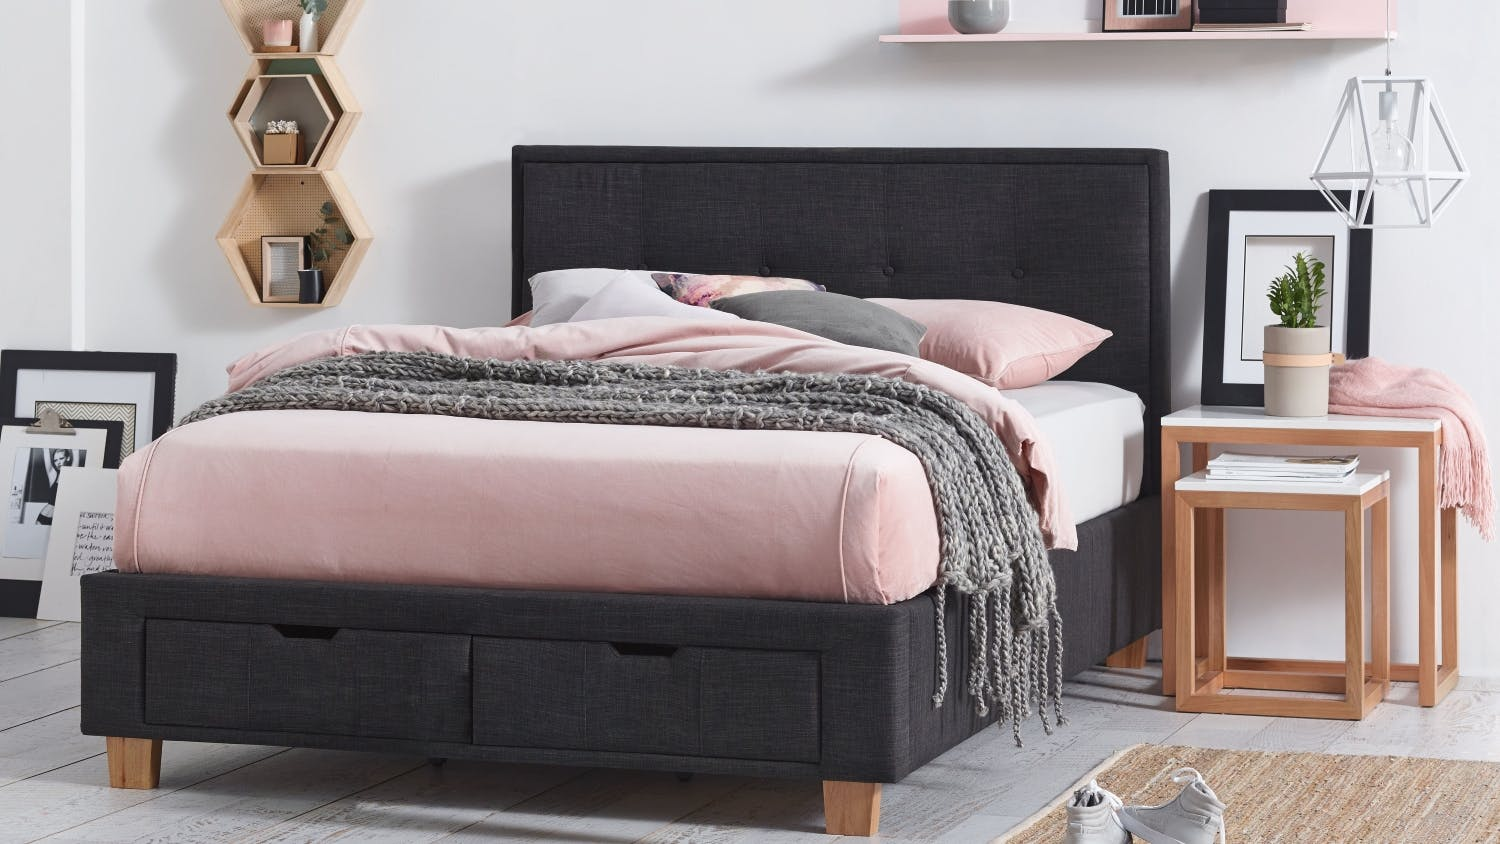 Halo bed frame with storage from Domayne